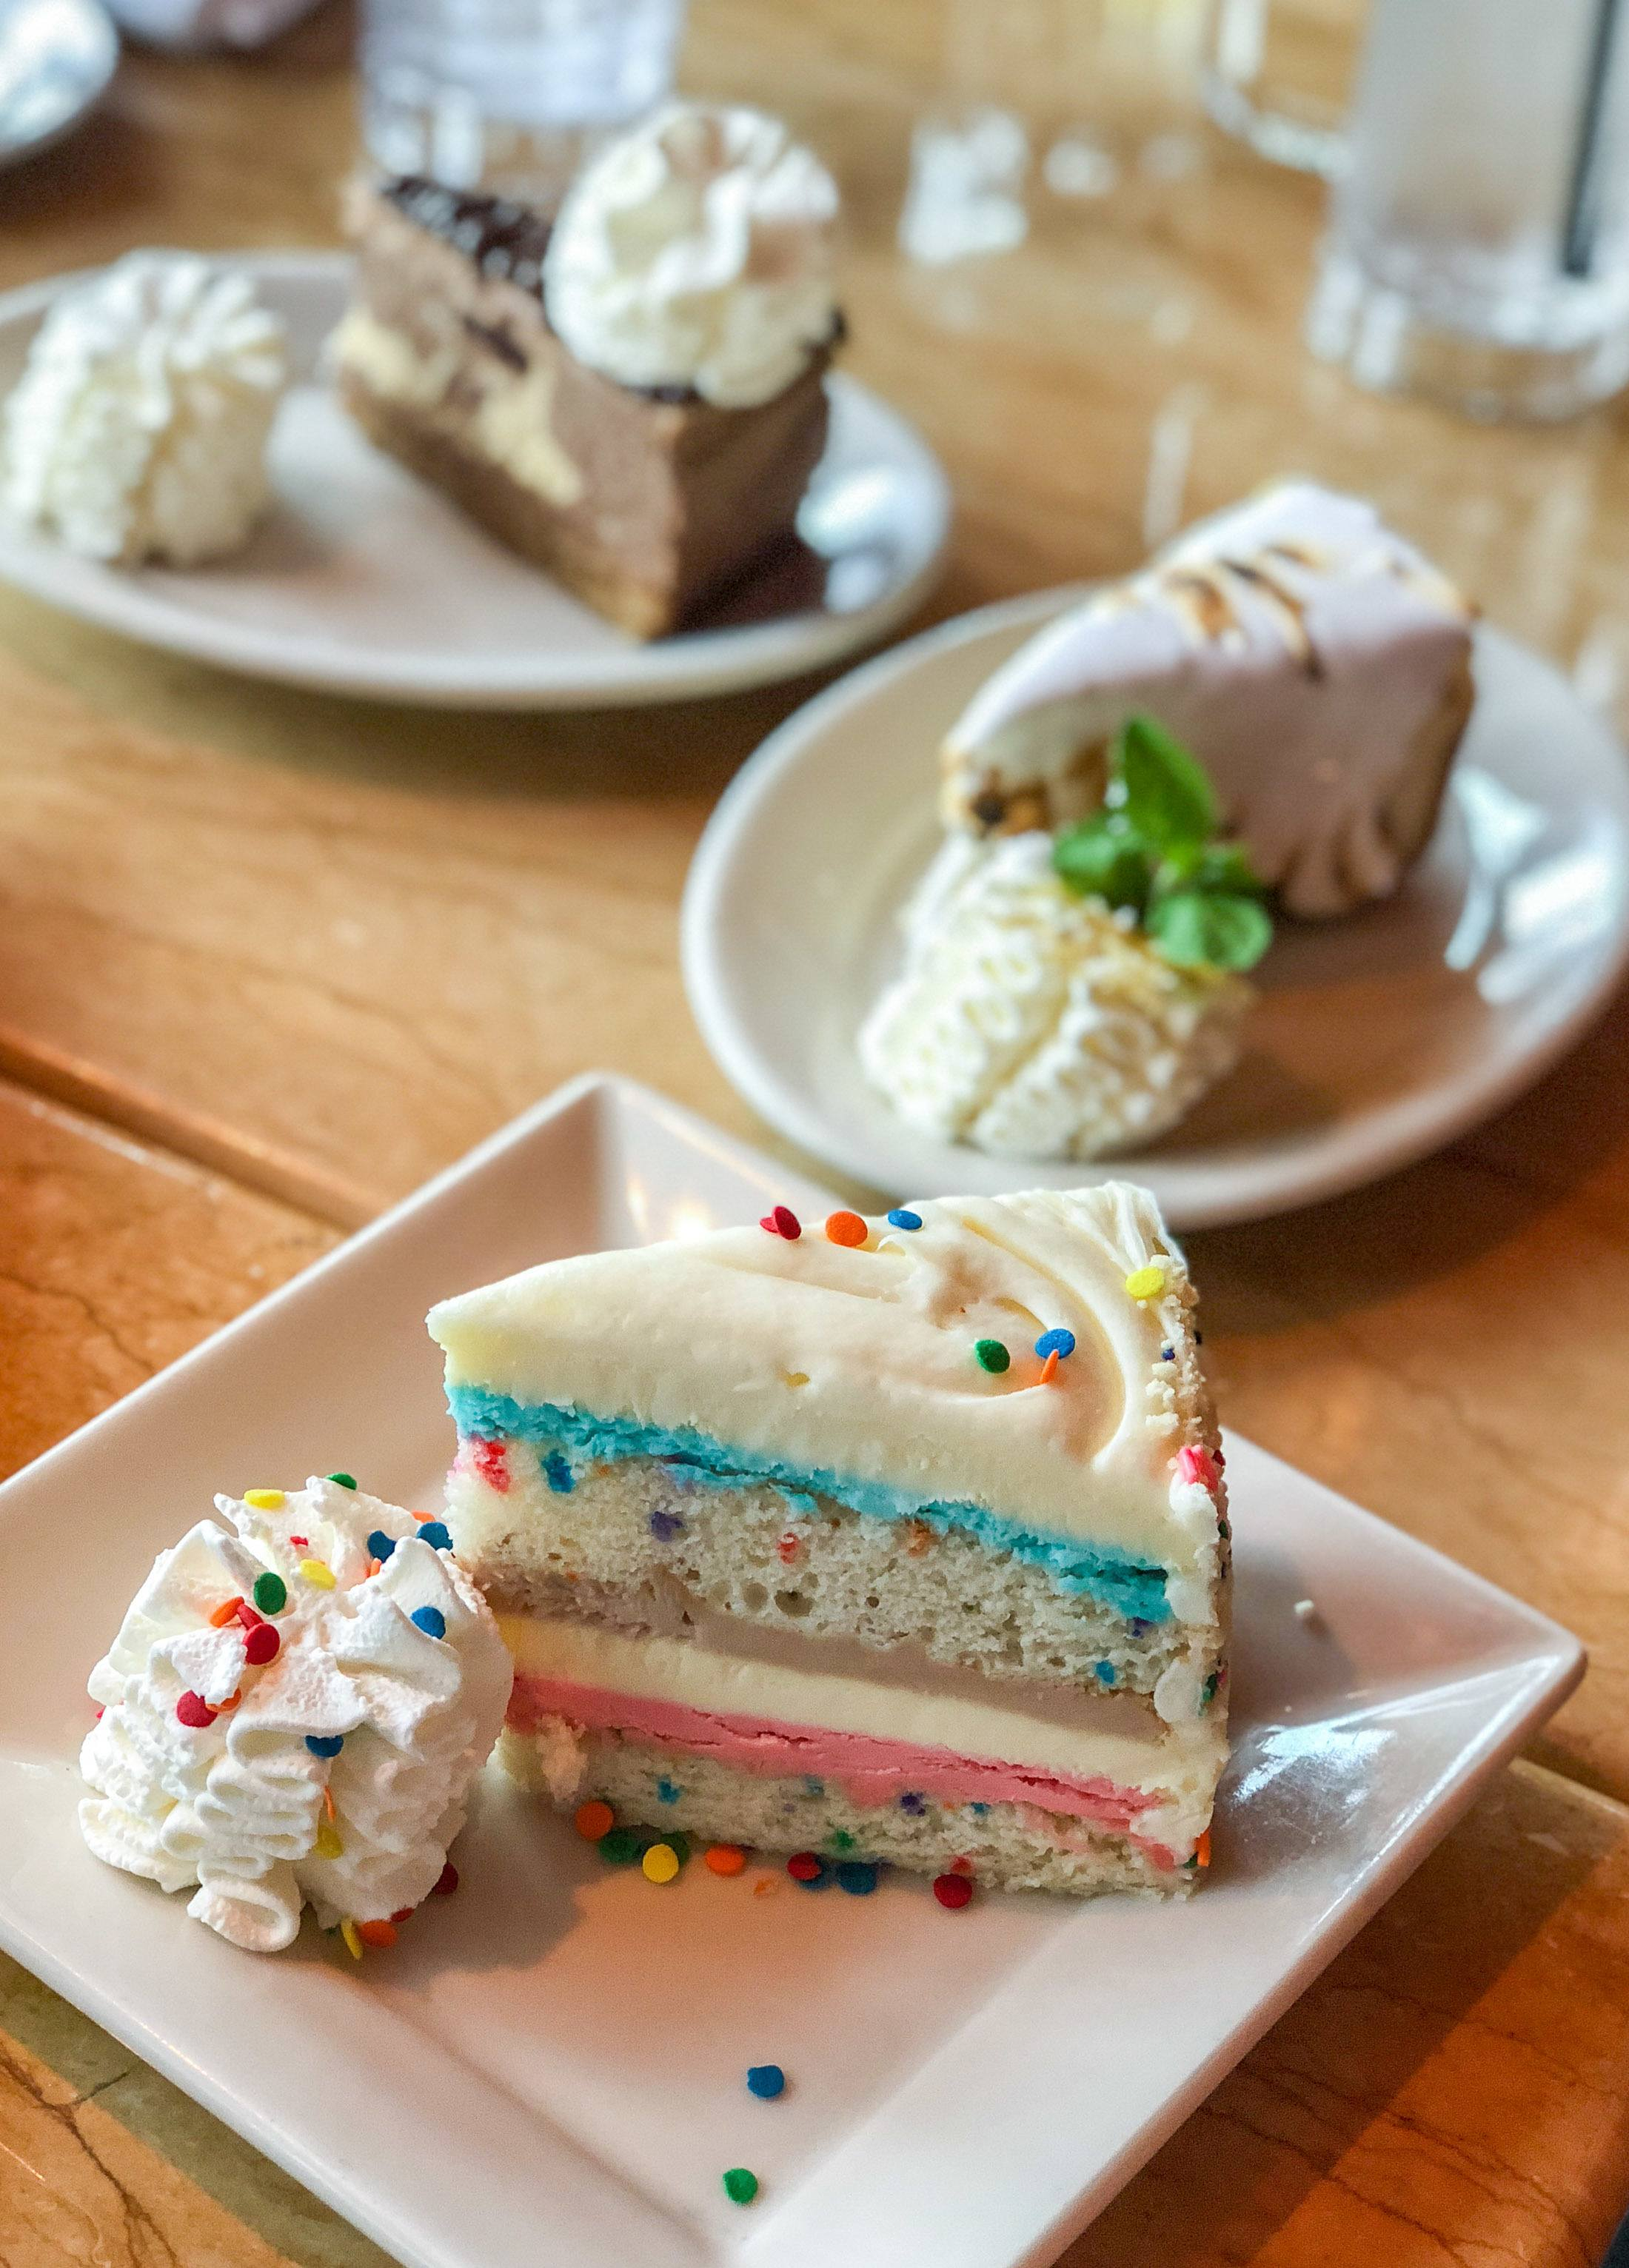 Celebration Cheesecake and other desserts at The Cheesecake Factory